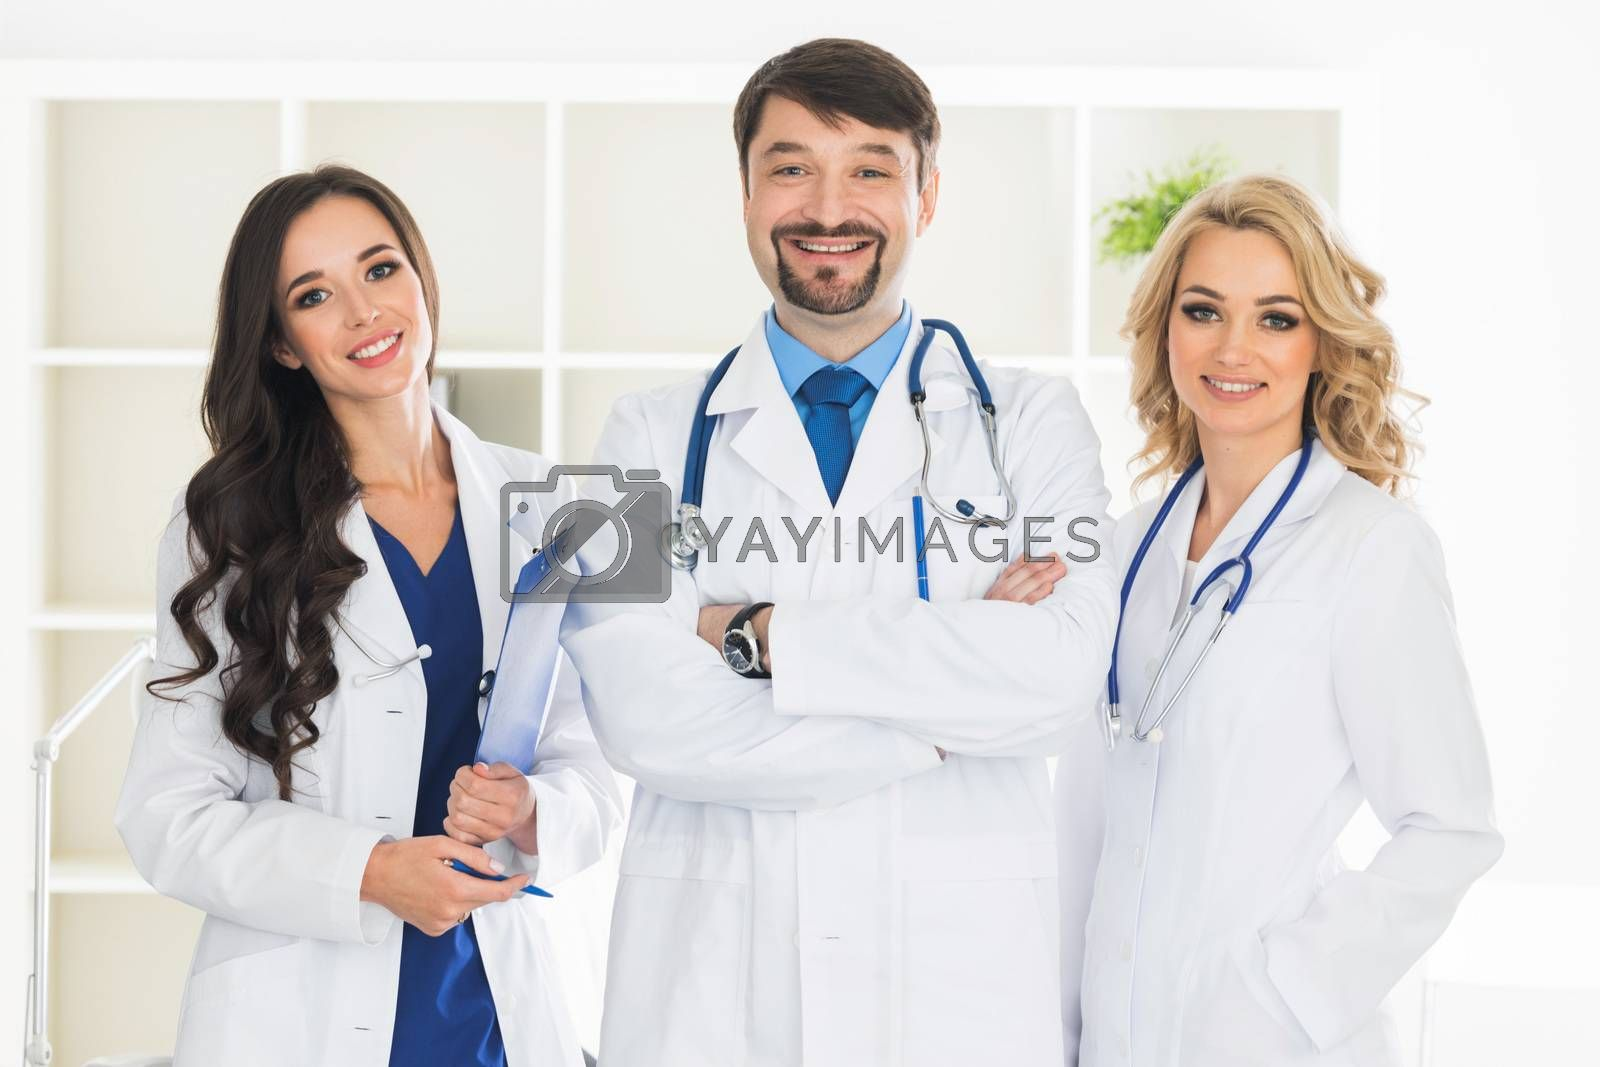 Smiling medical doctors with stethoscopes in medical clinic office